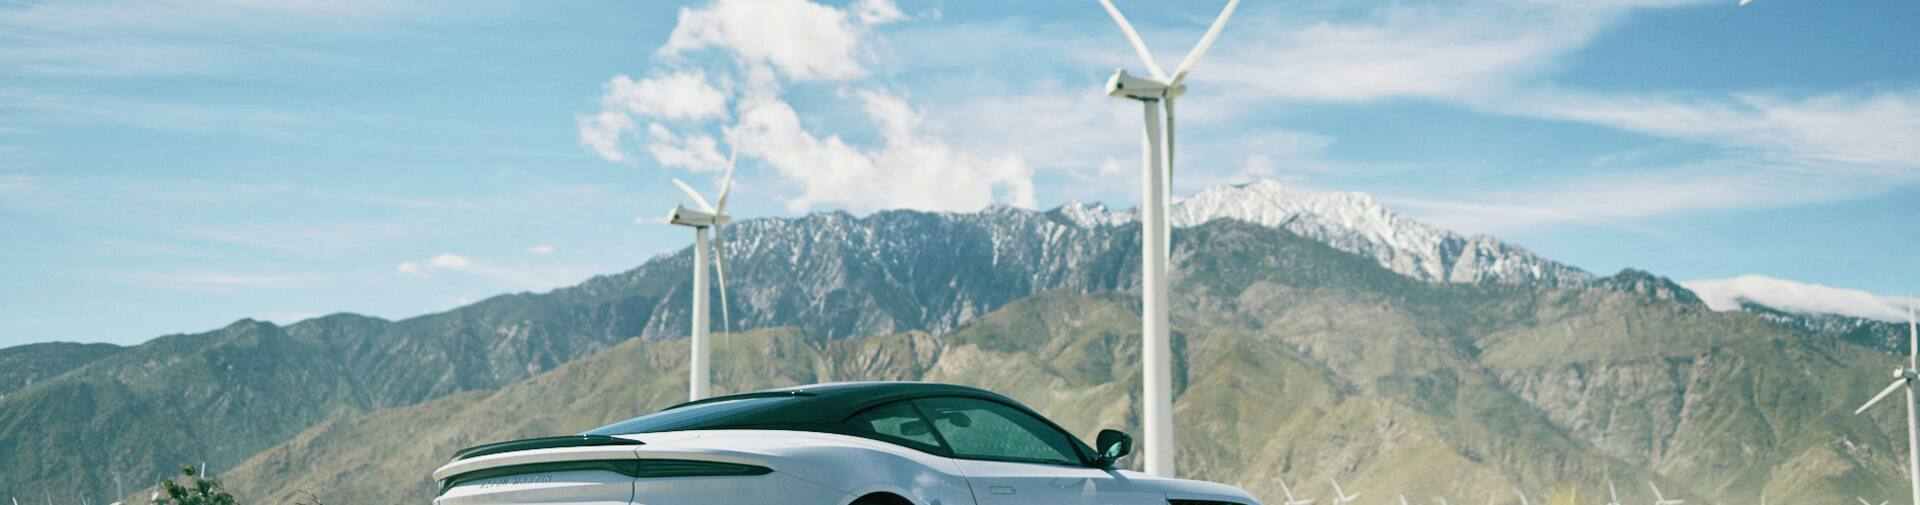 Aston Martin car in superbloom field with windmill